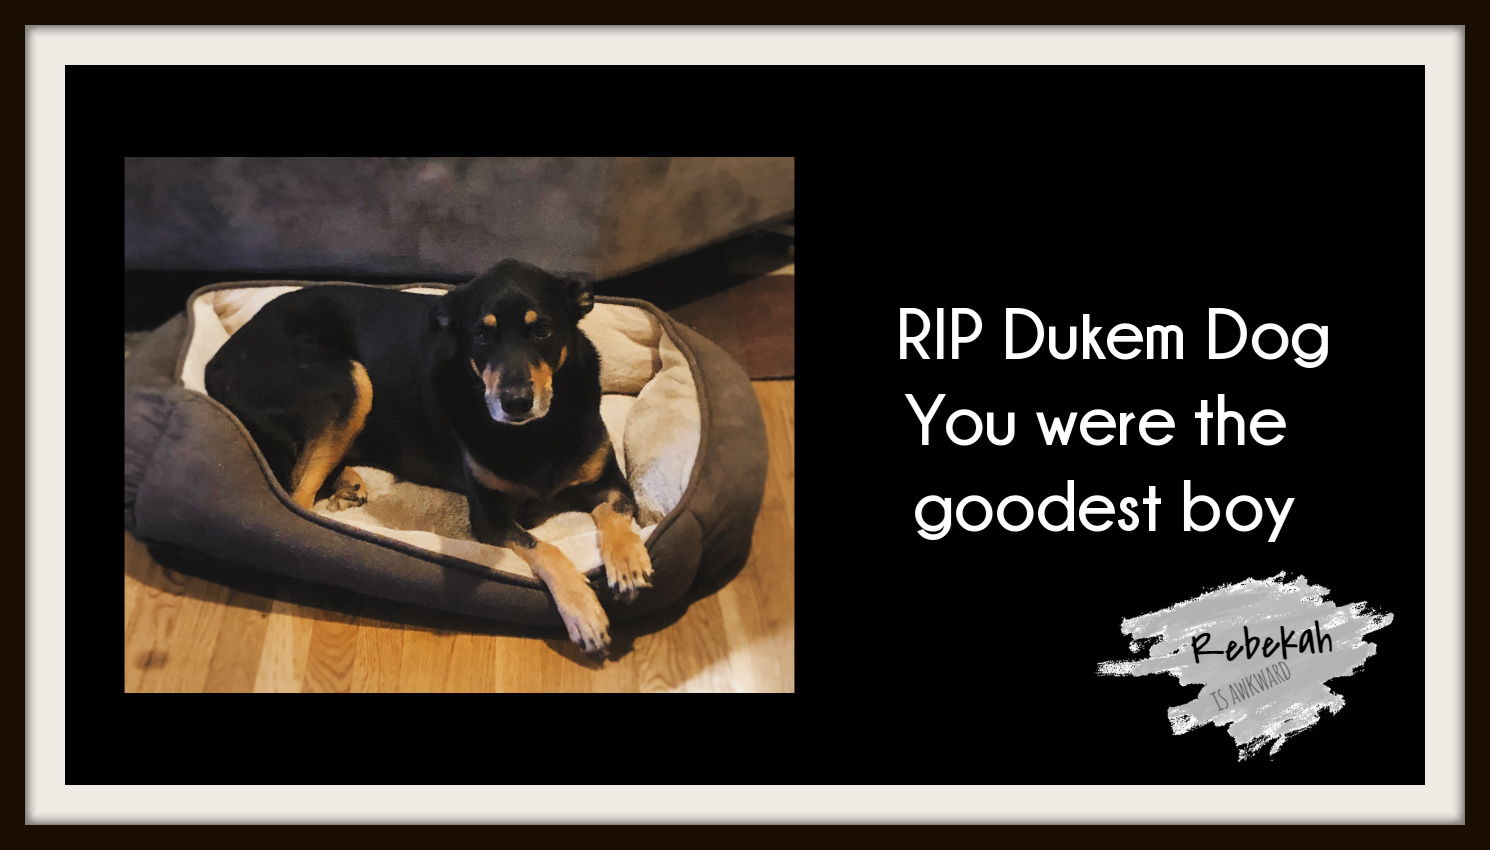 Our Dukem Dog